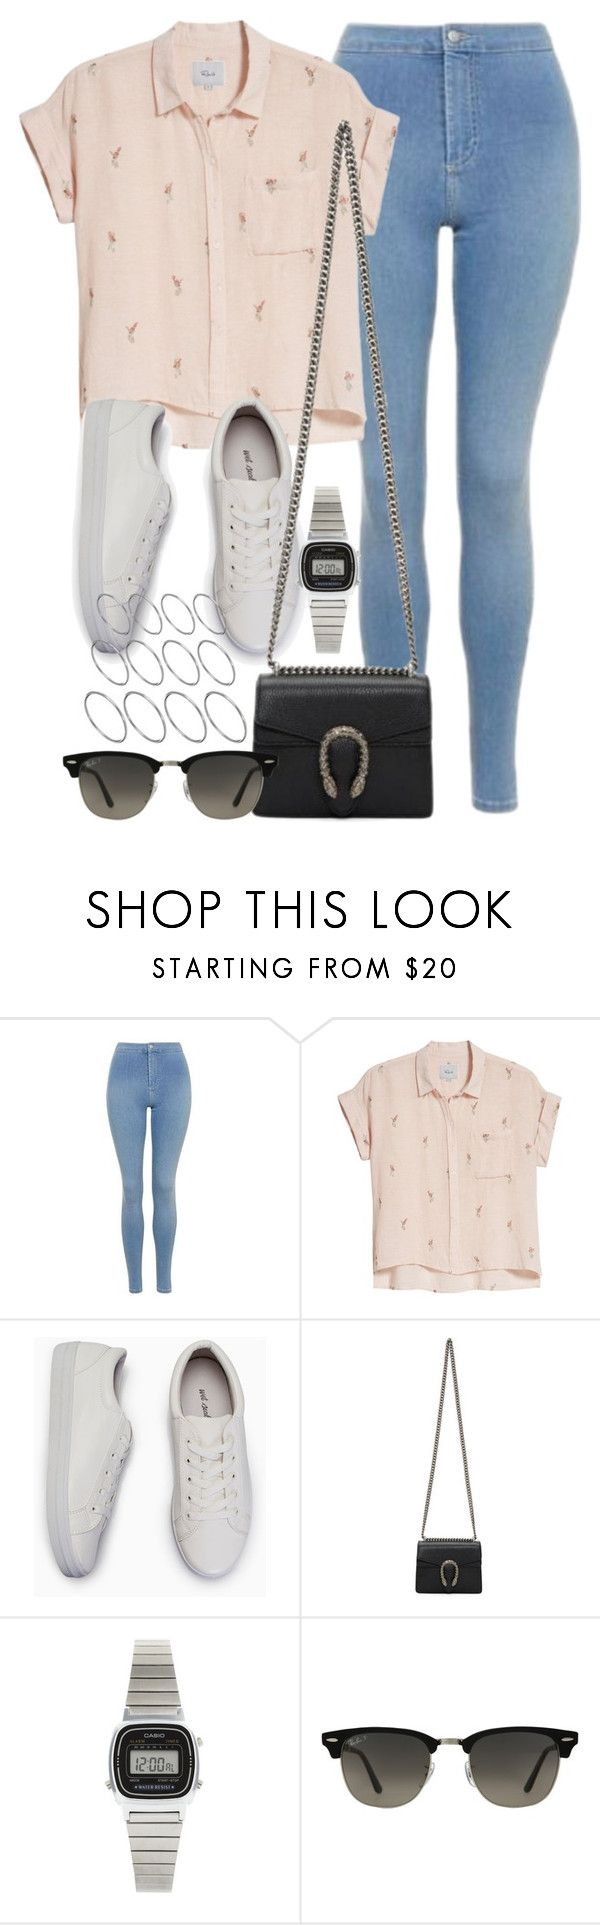 """Sin título #13154"" by vany-alvarado ❤ liked on Polyvore featuring Topshop, Rails, Gucci, Casio, Ray-Ban and ASOS"